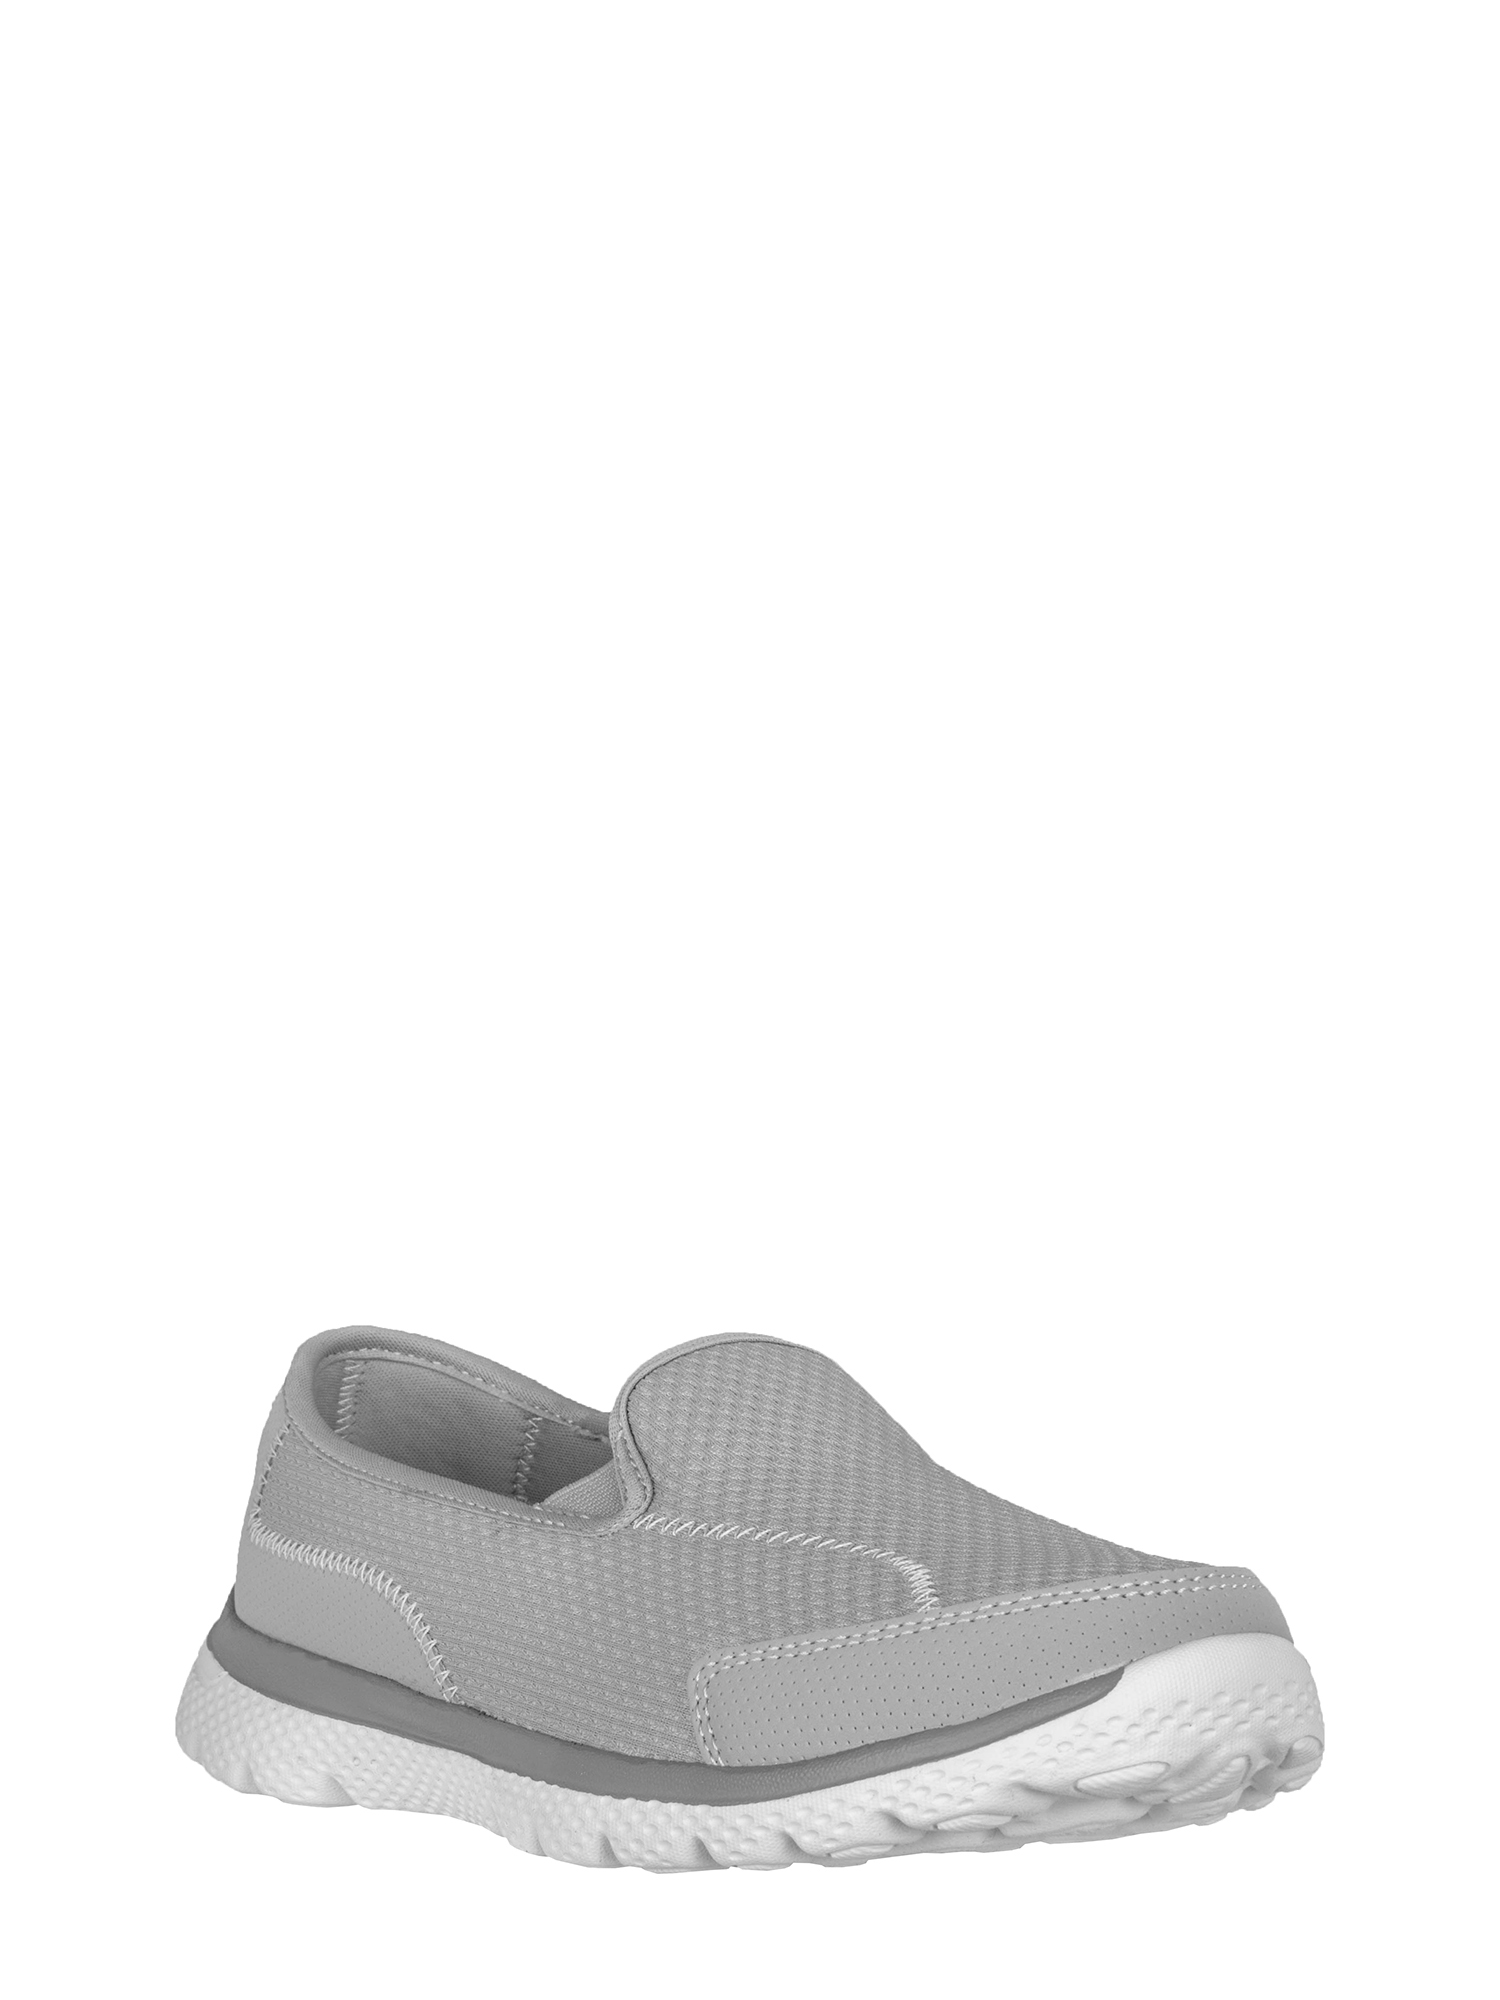 Athletic Works Women's Medium and Wide Width Knit Slip on Shoe